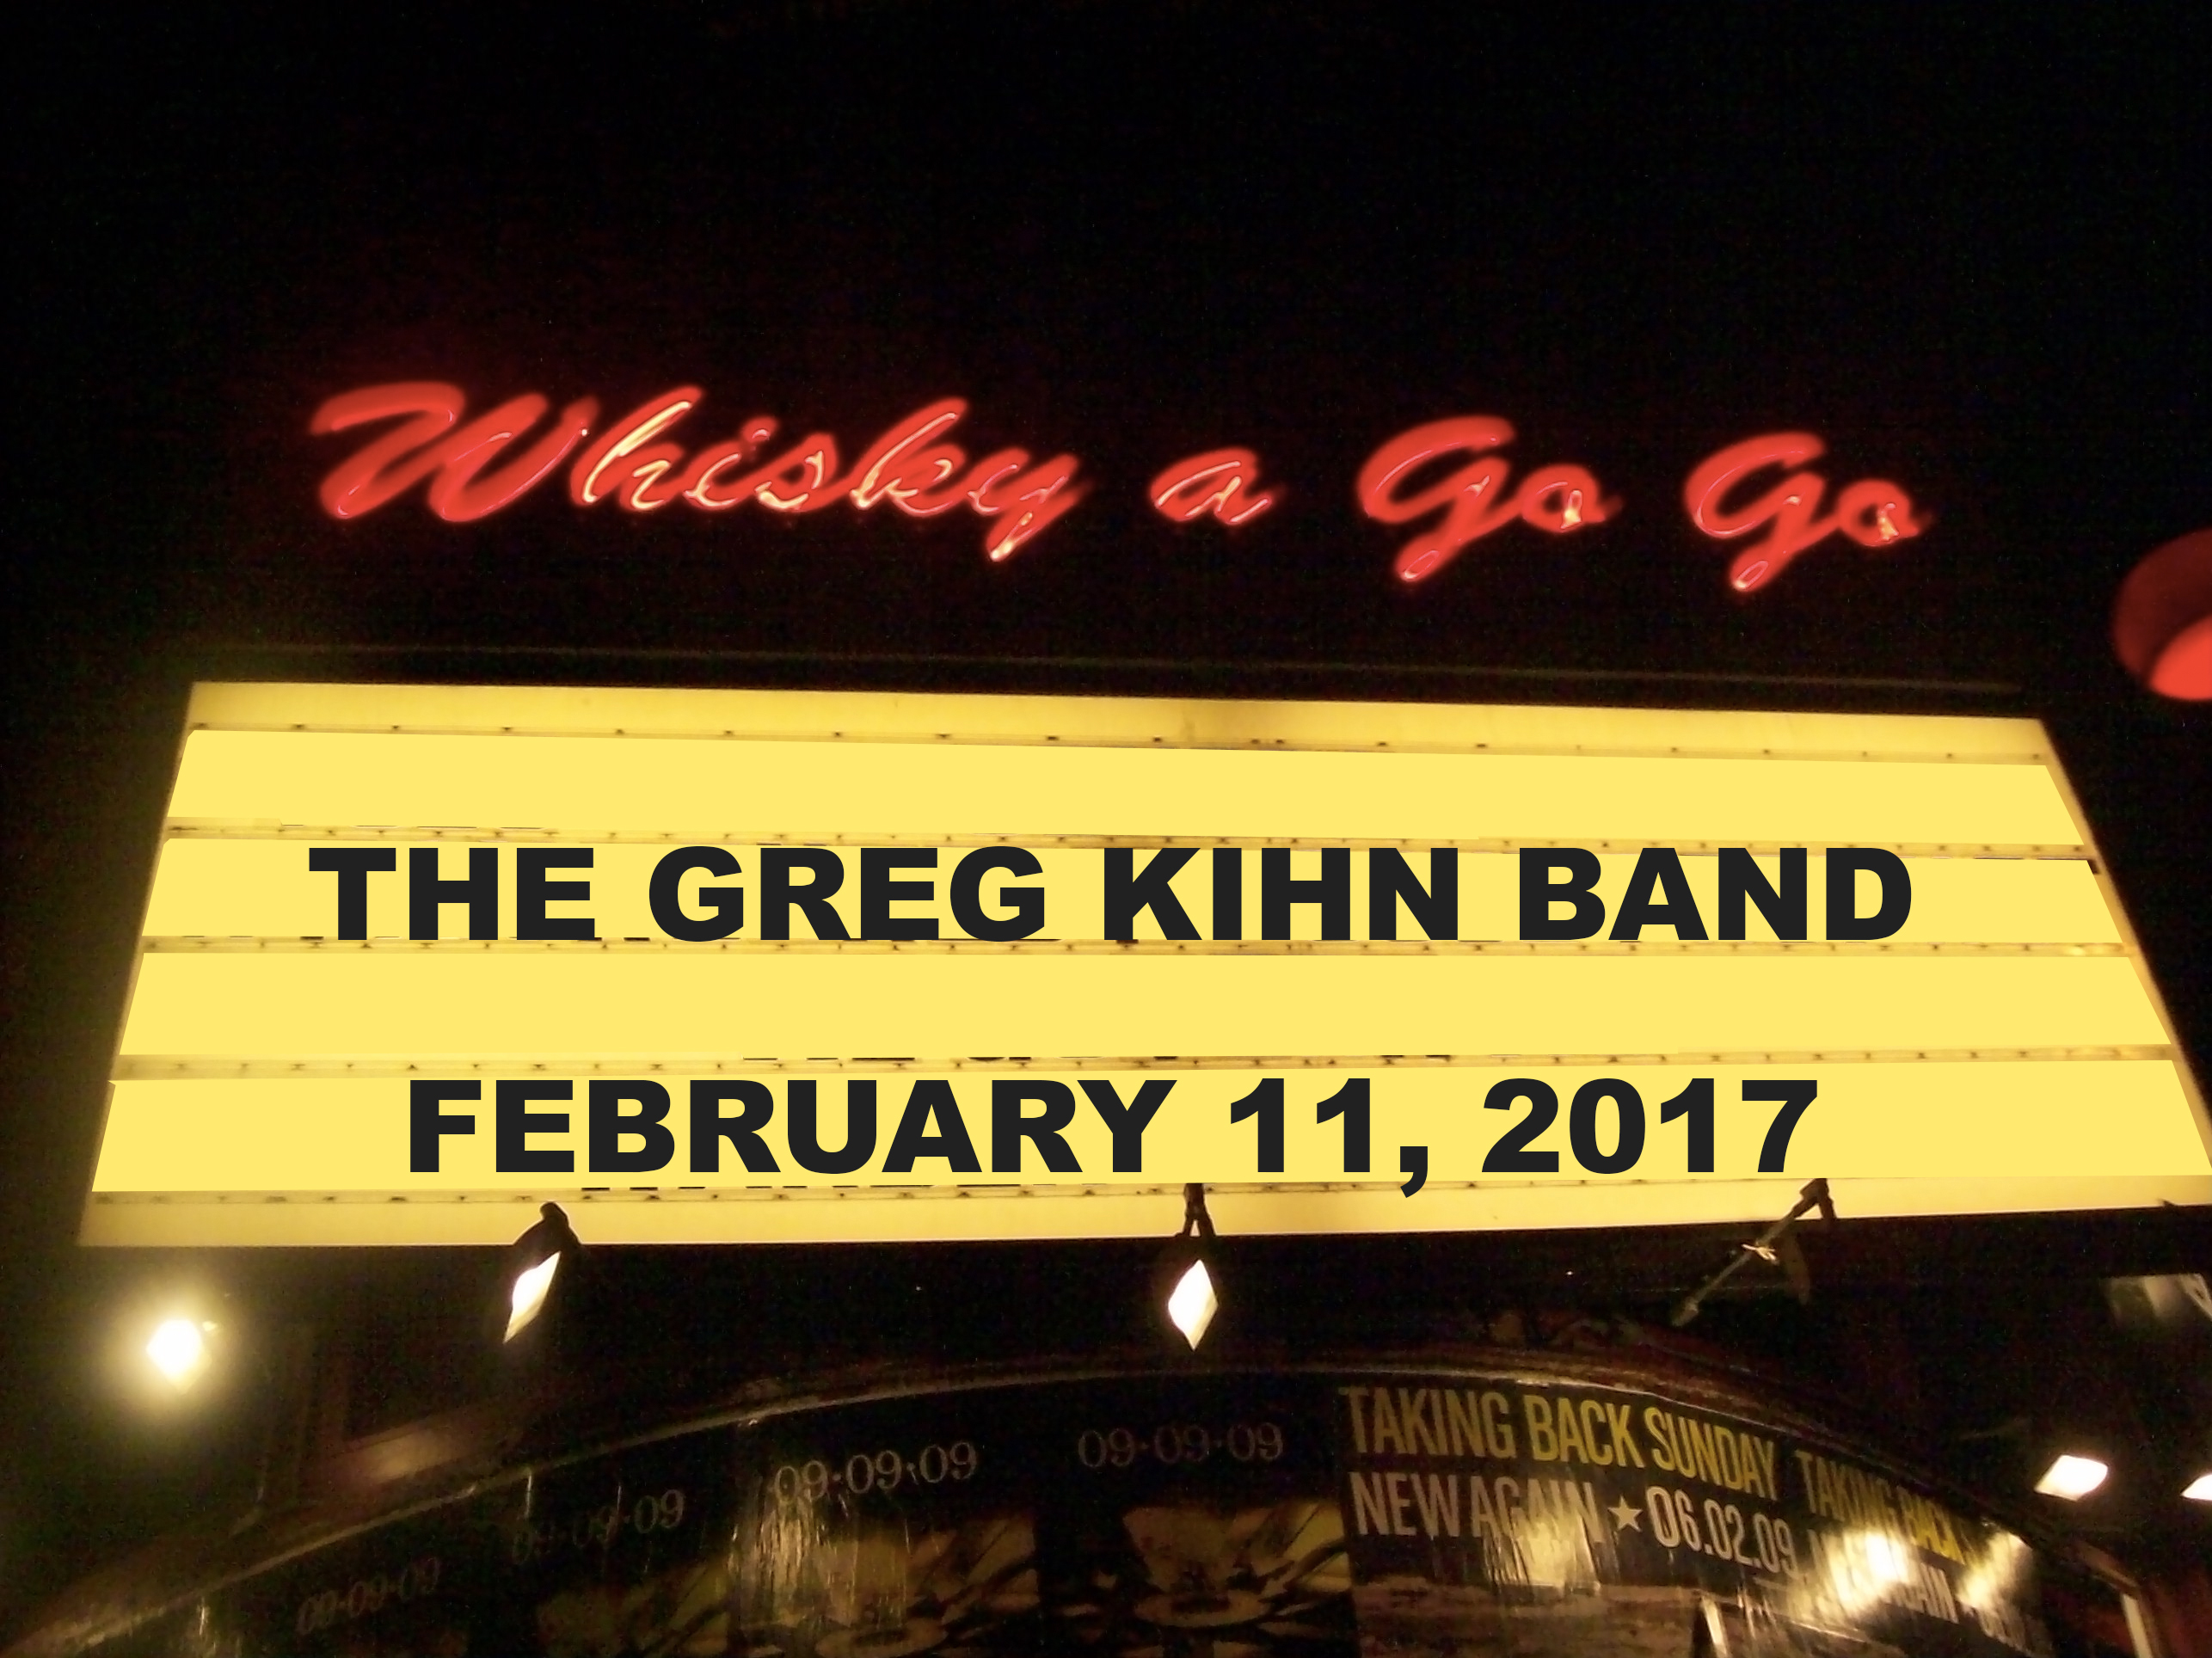 Win 2 Tickets to see Greg Kihn Band at Whisky A Go Go